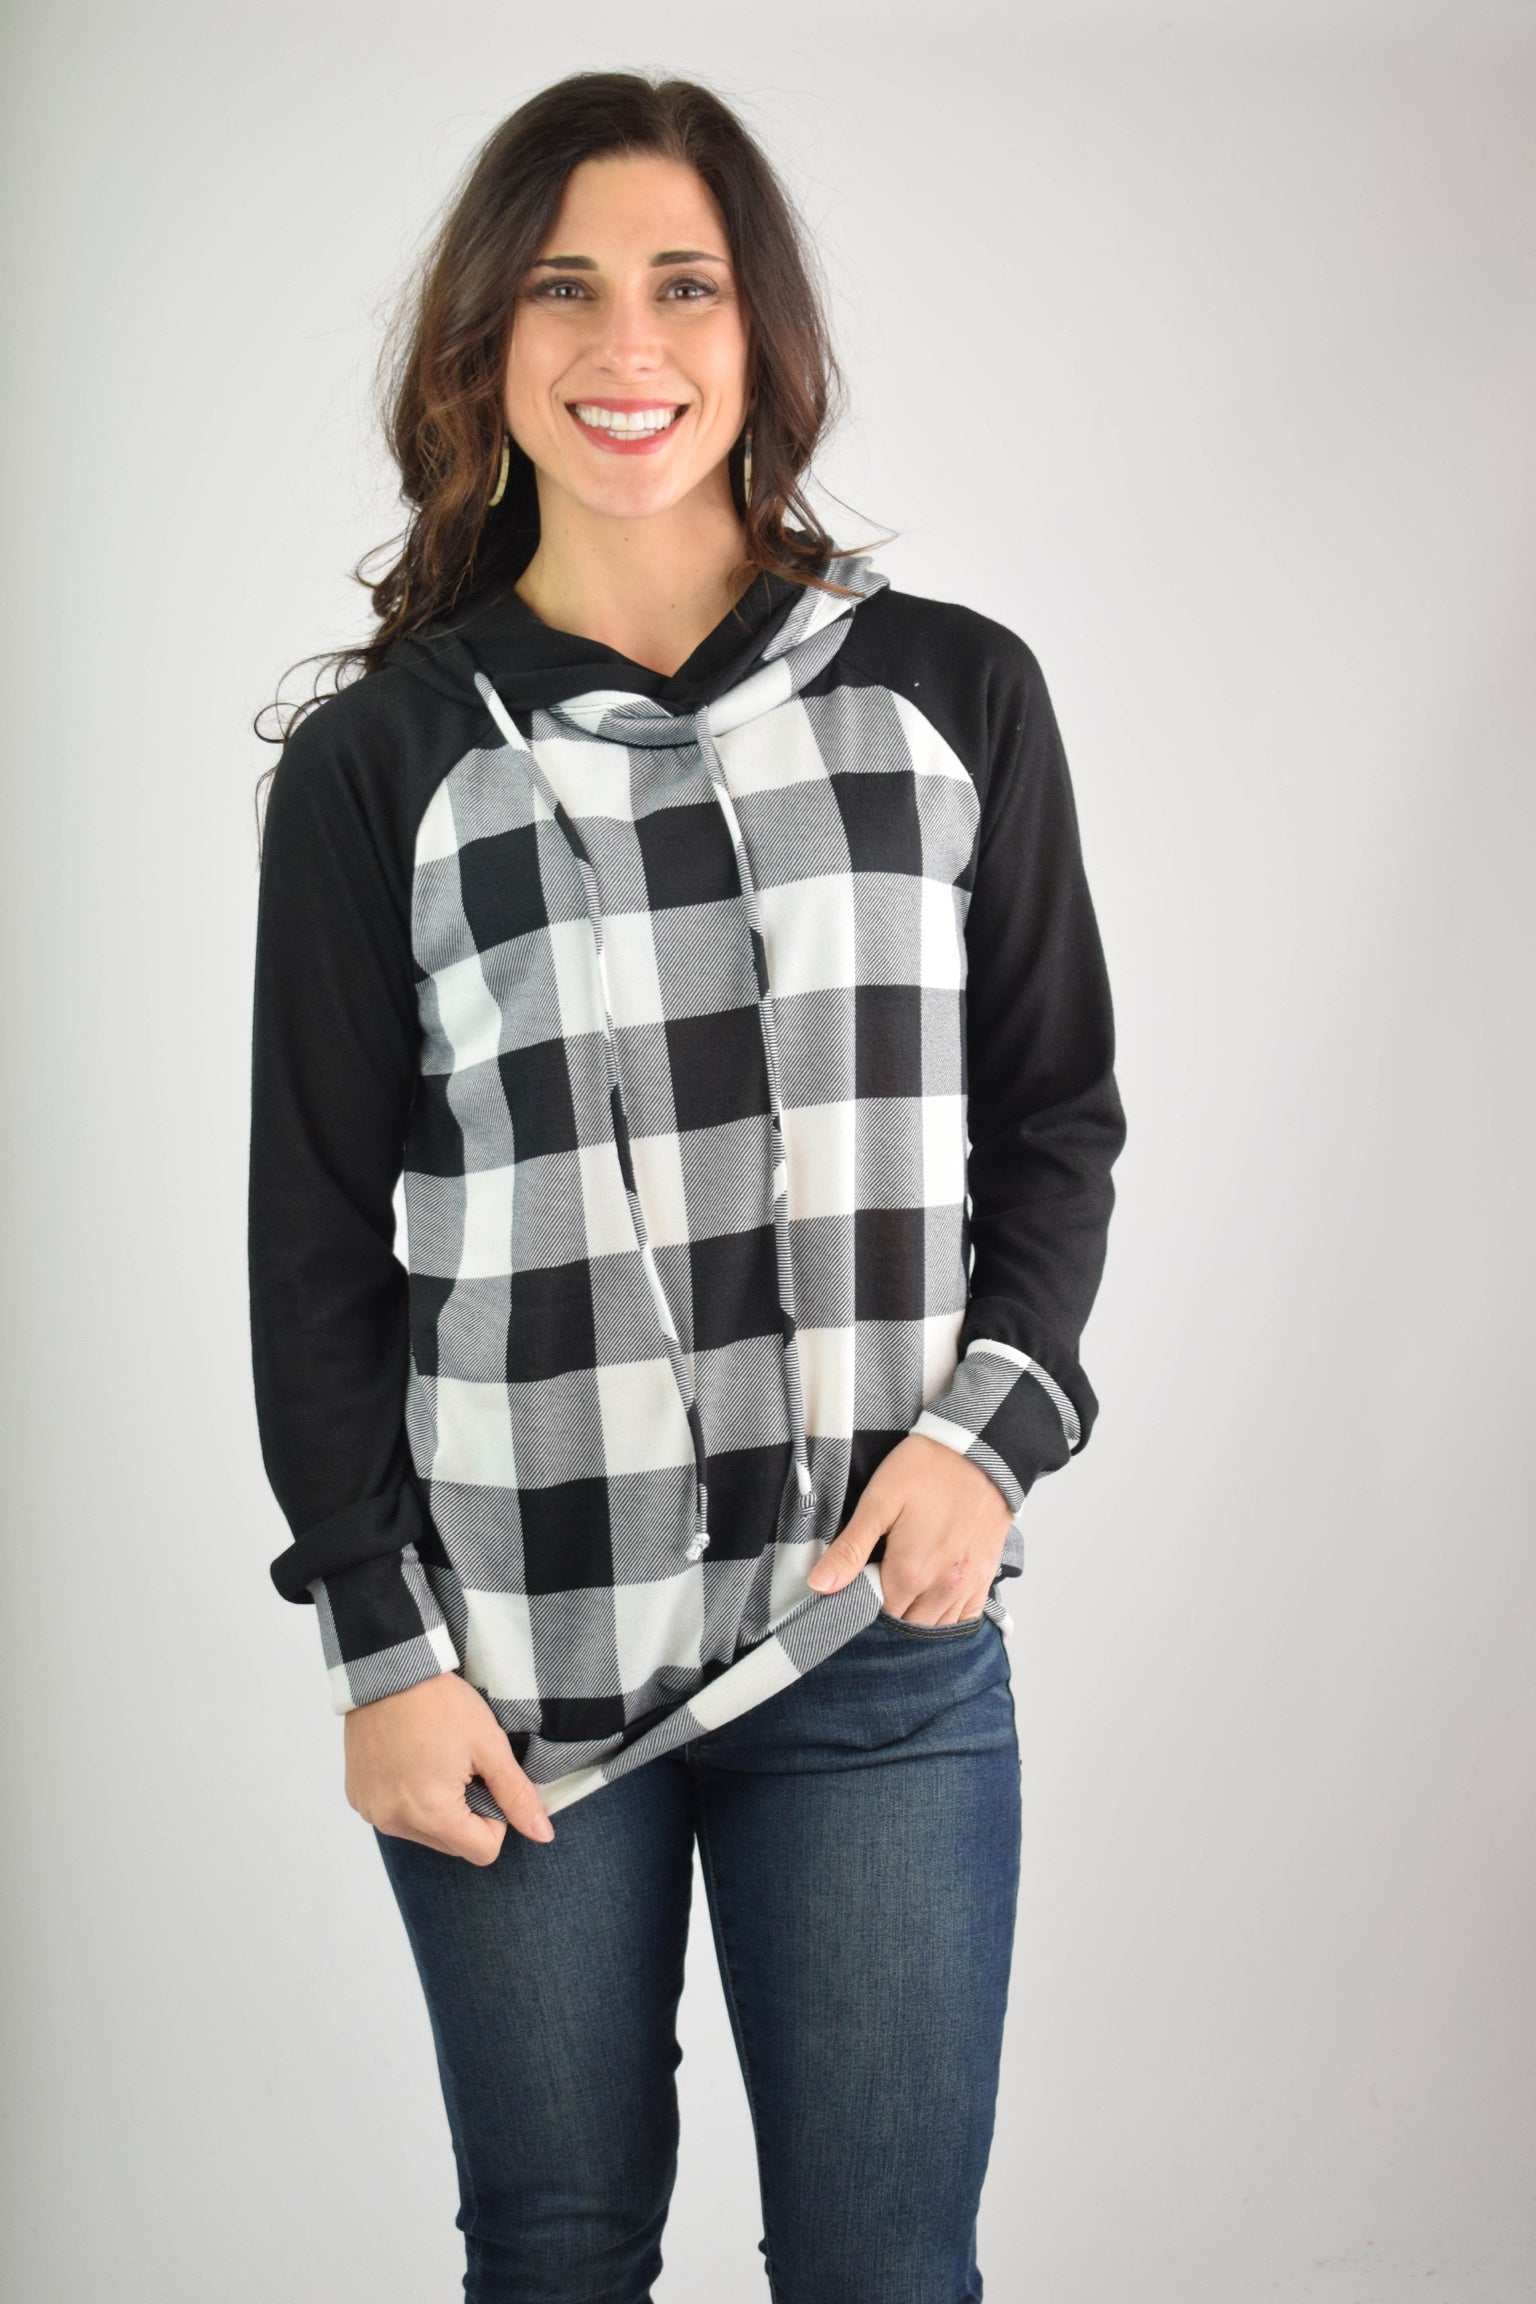 Next To You Buffalo Plaid Hoodie- Black & White